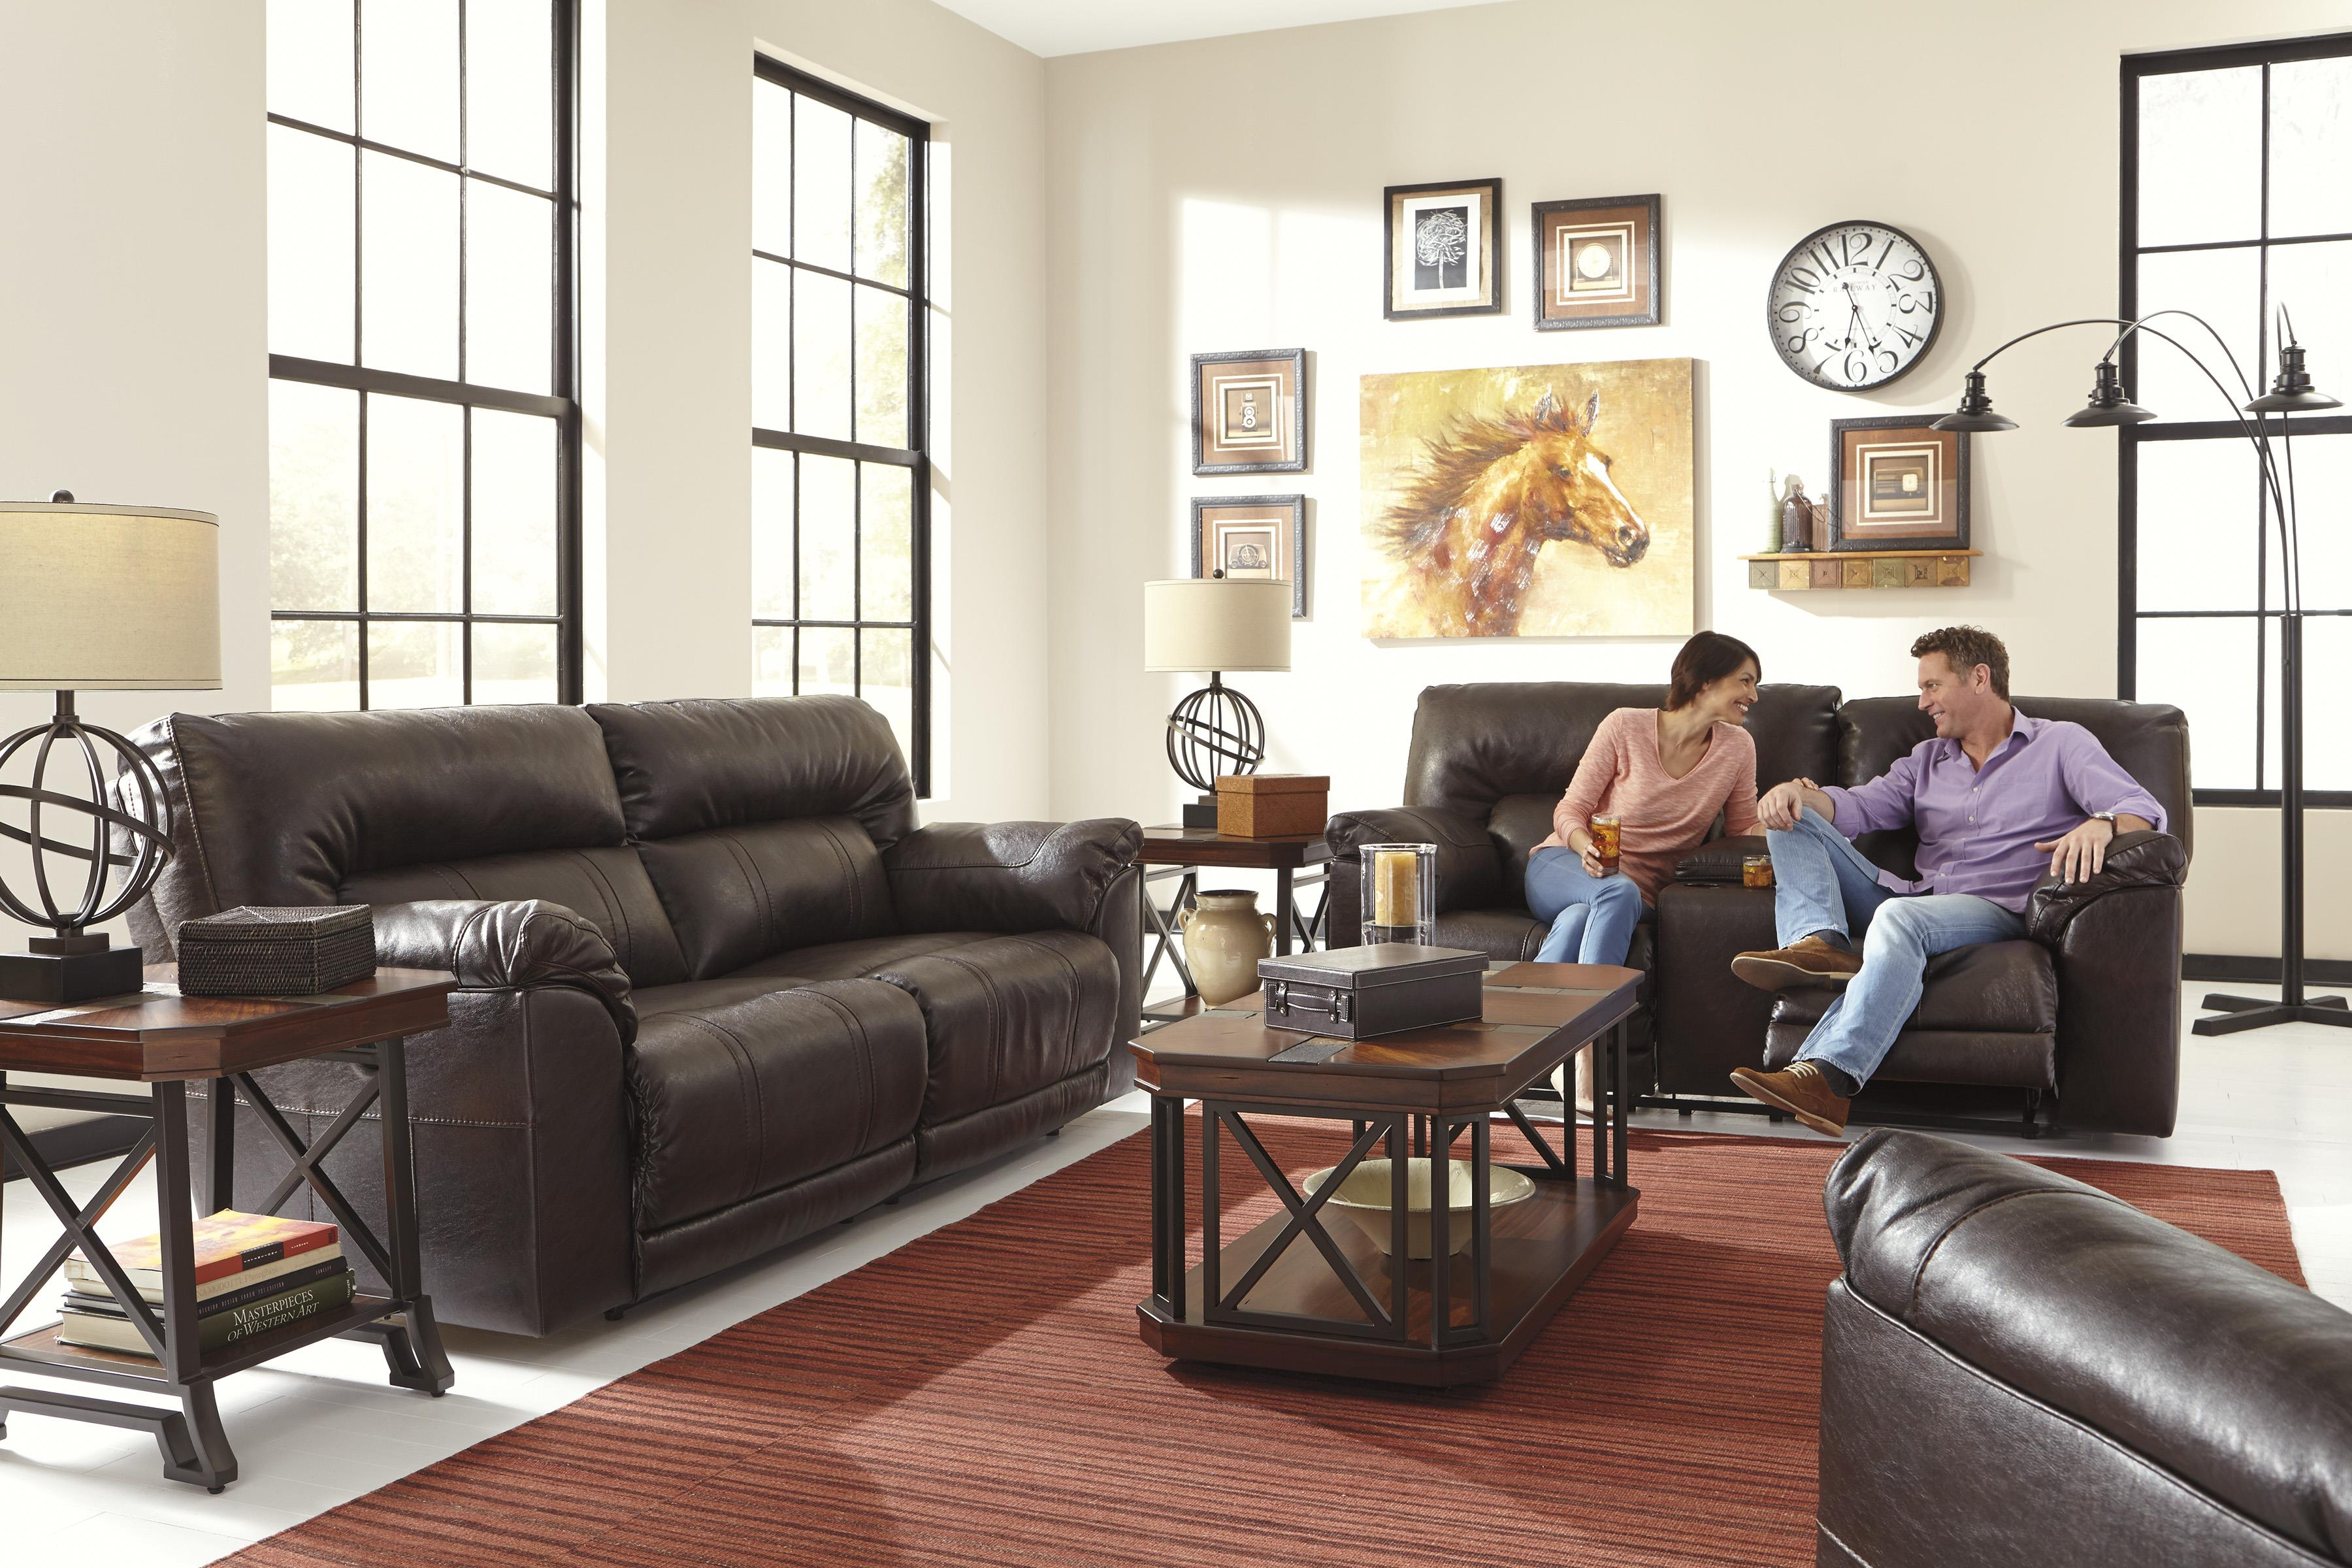 Benchcraft Barrettsville DuraBlend® 3-Piece Reclining Sectional - Suburban Furniture - Reclining Sectional Sofa : benchcraft sectional - Sectionals, Sofas & Couches